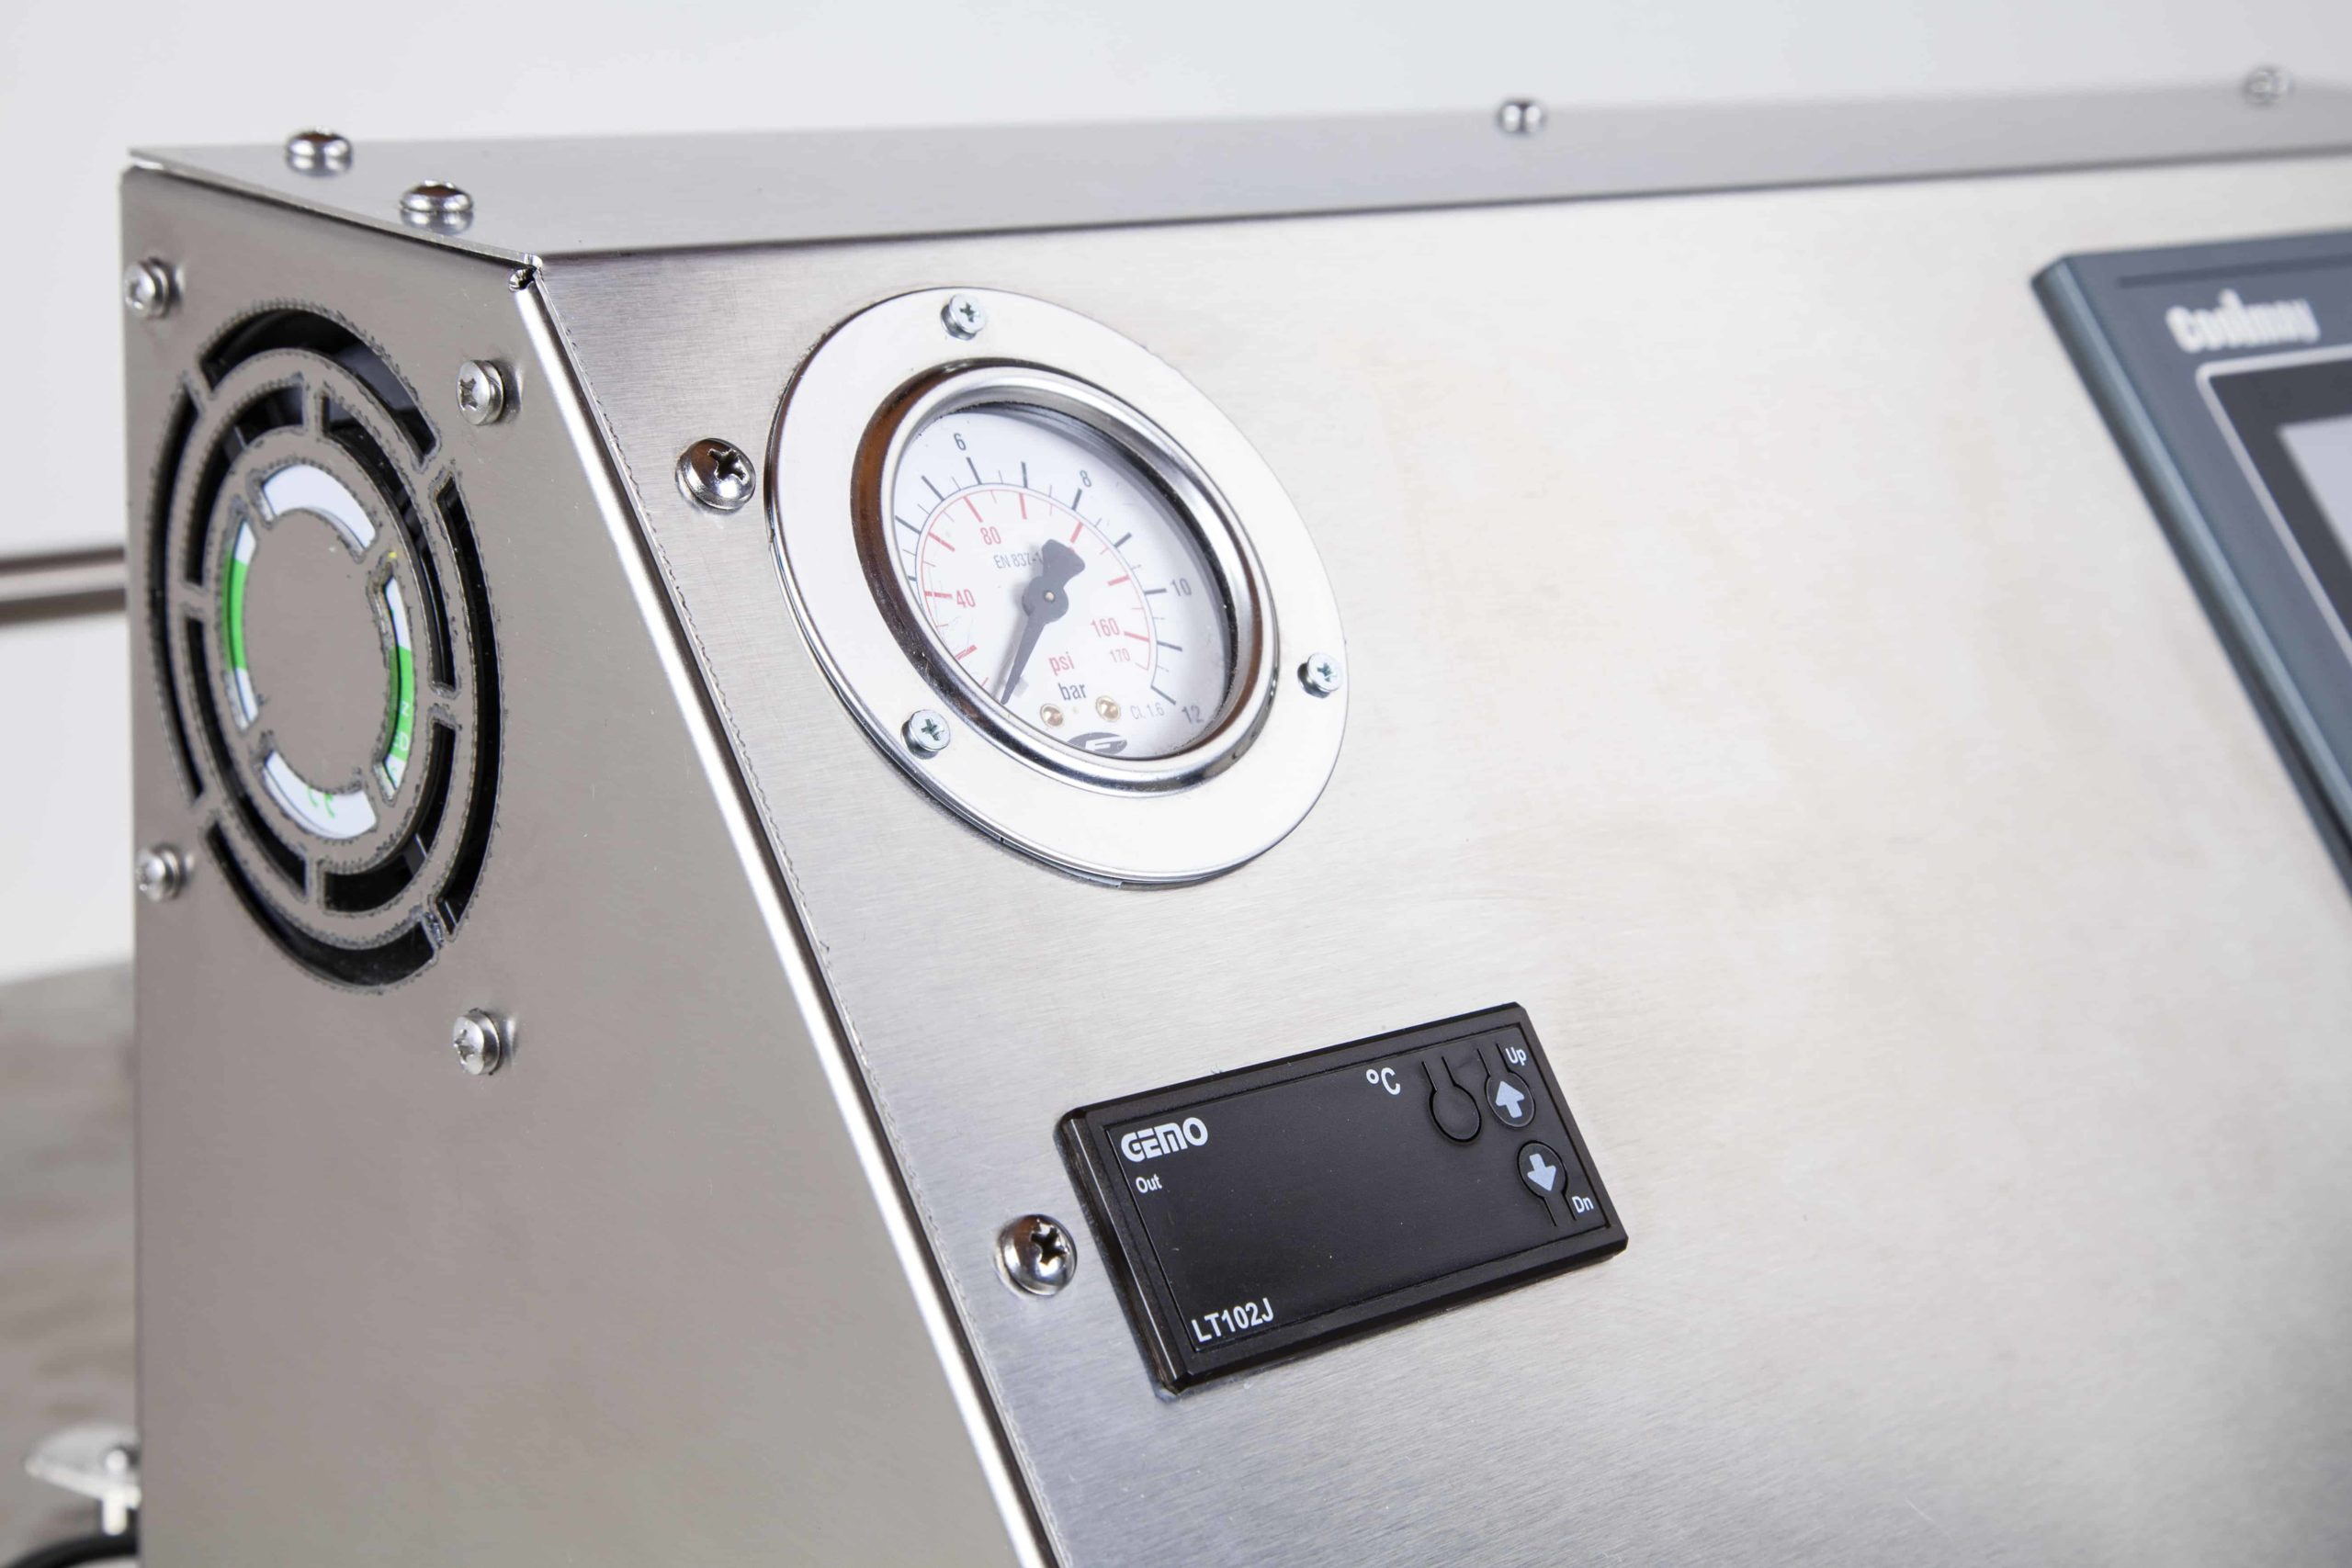 UNI SVC 27-48 Steam Cleaning Machine Front Bar View